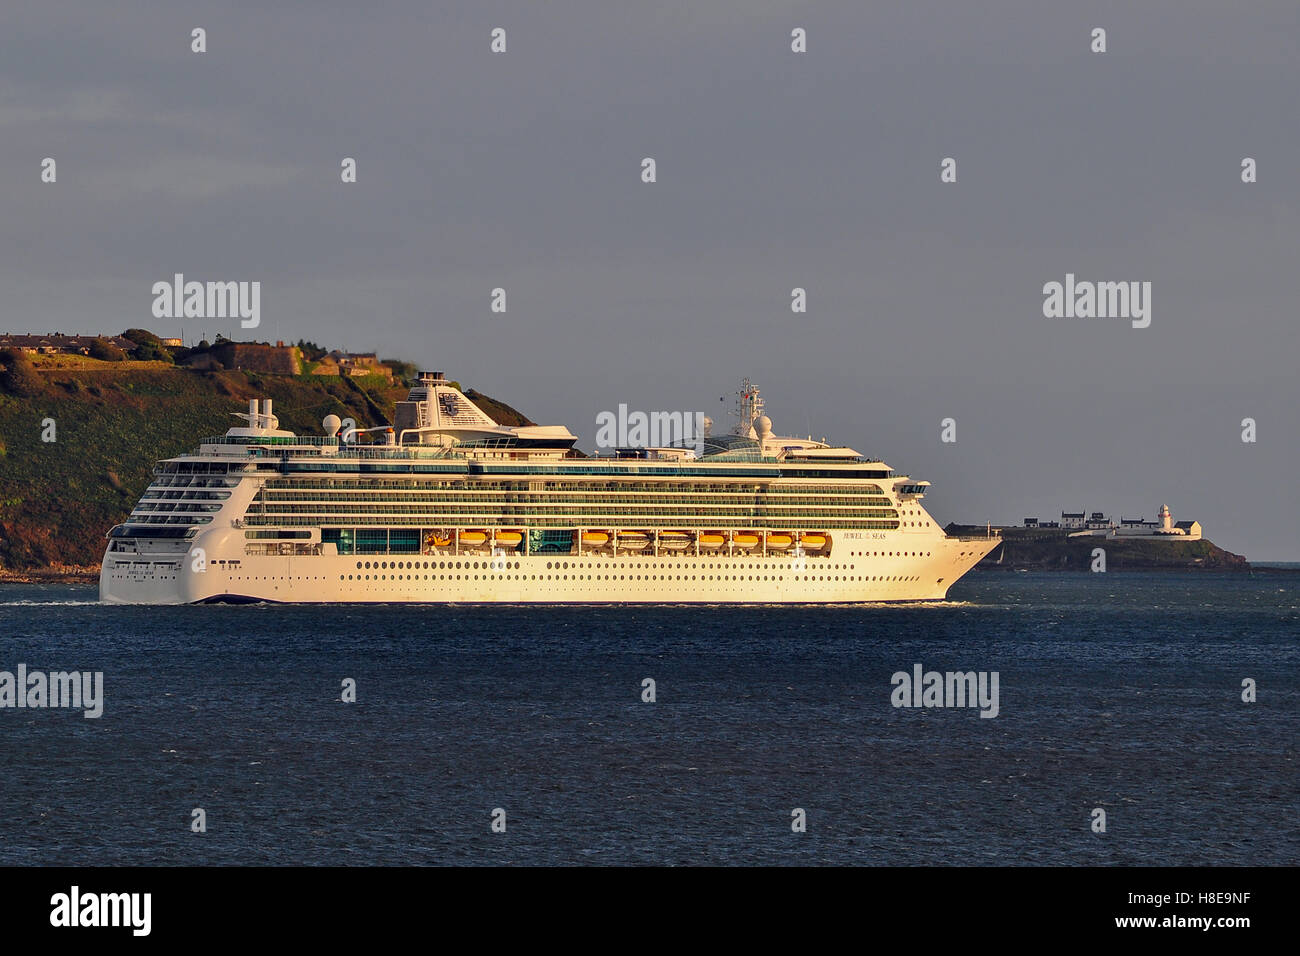 Luxury cruise liner 'Jewel of the Seas' sails from Cobh Cruise Terminal, Cobh, County Cork, Ireland. - Stock Image